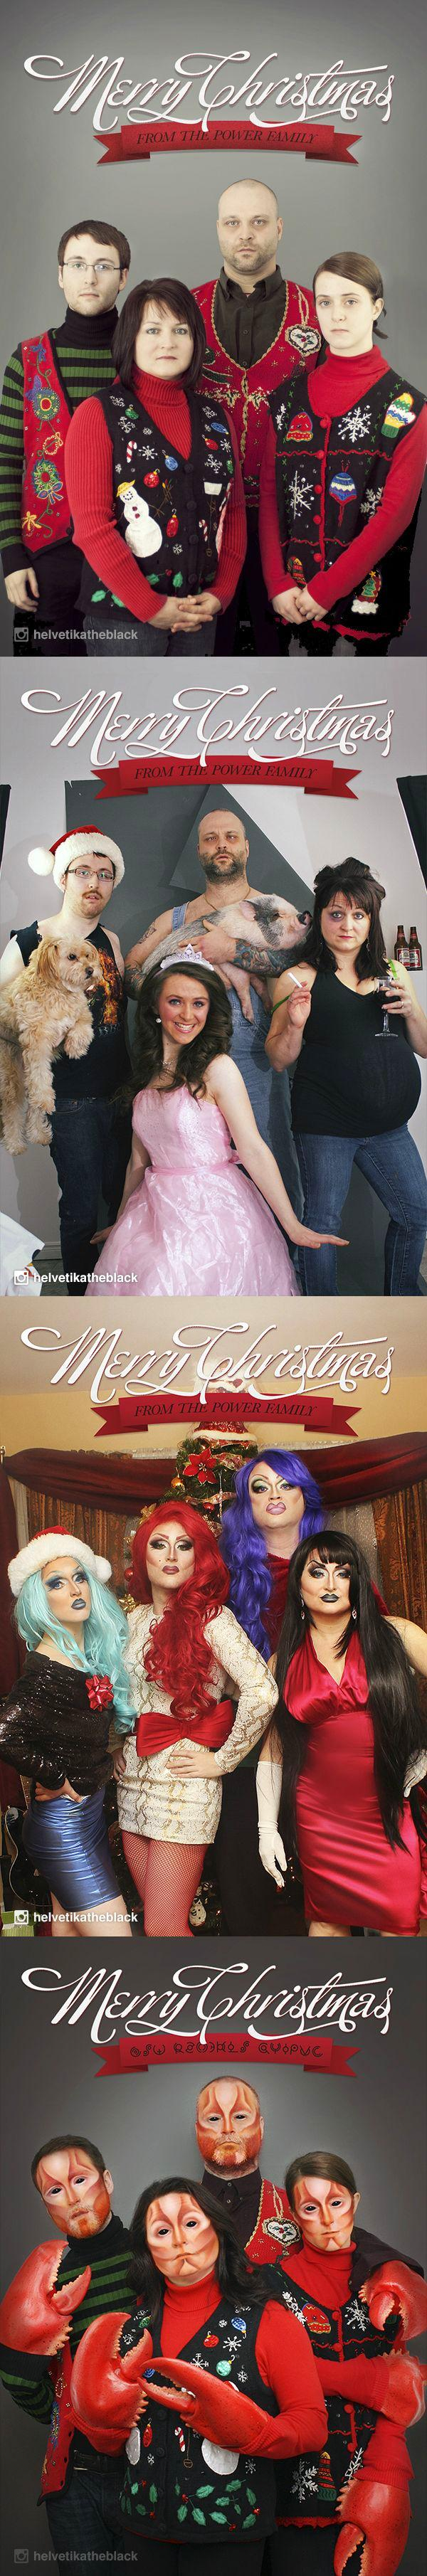 A family takes christmas photos for 4 years each with a different theme. One of them is where they are all ladies.